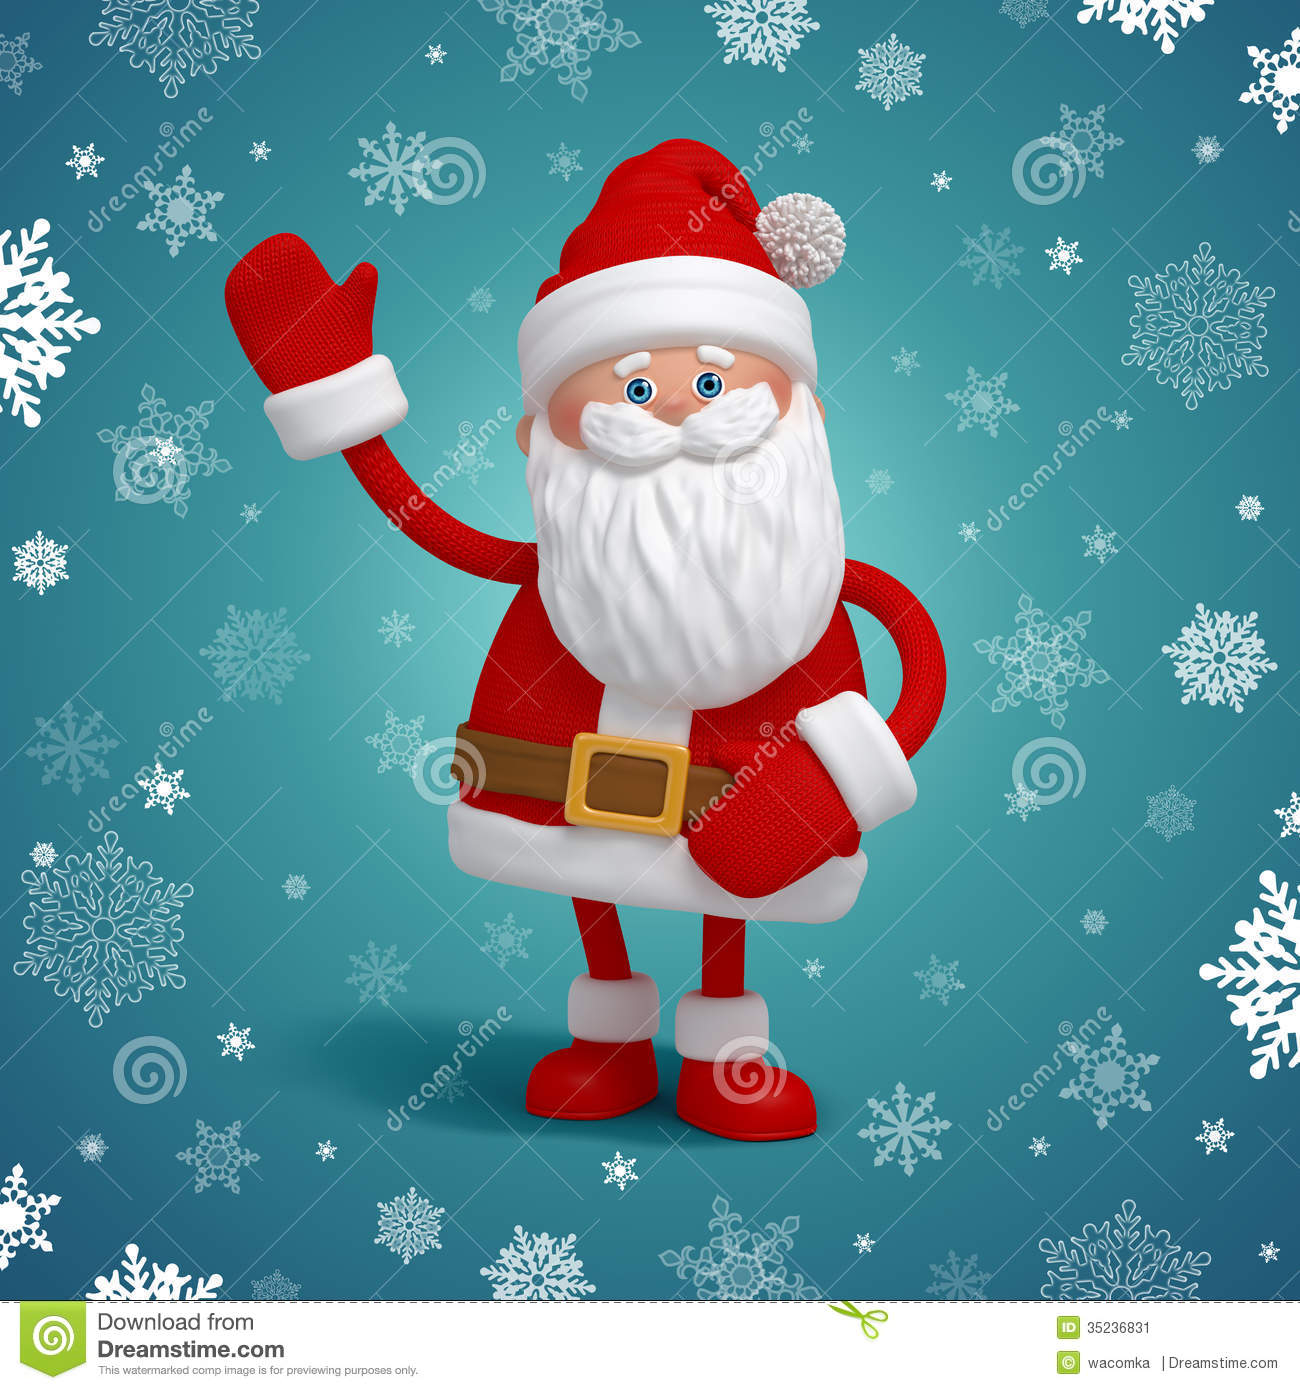 Cute 3d Santa Claus Cartoon Character Stock Image